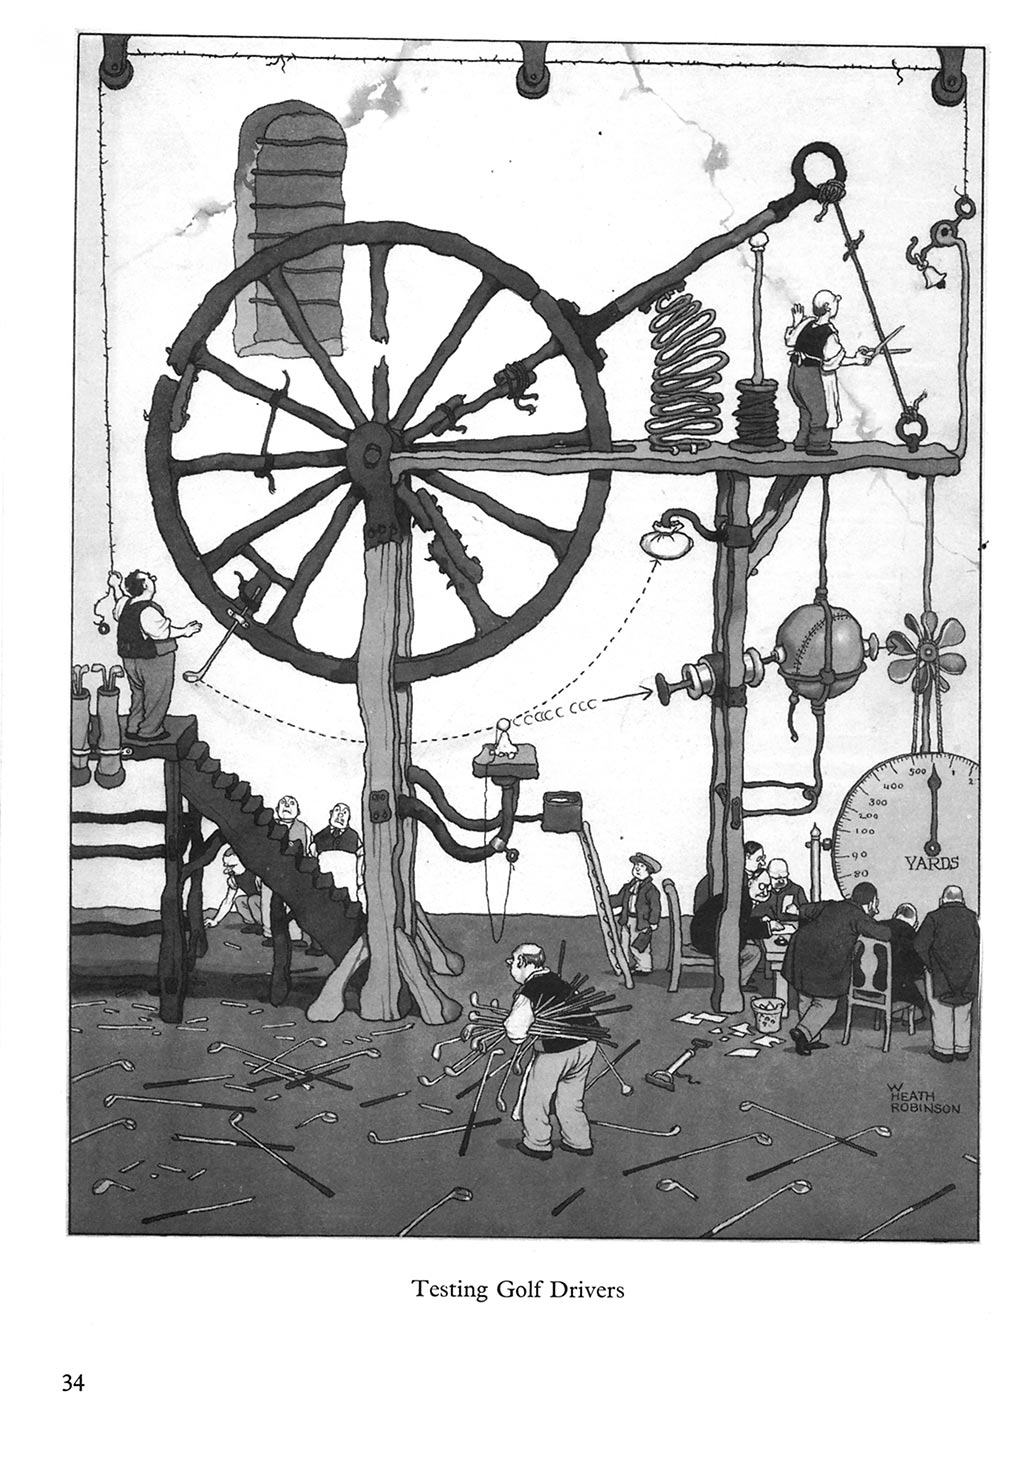 william_heath_robinson_inventions_-_page_034